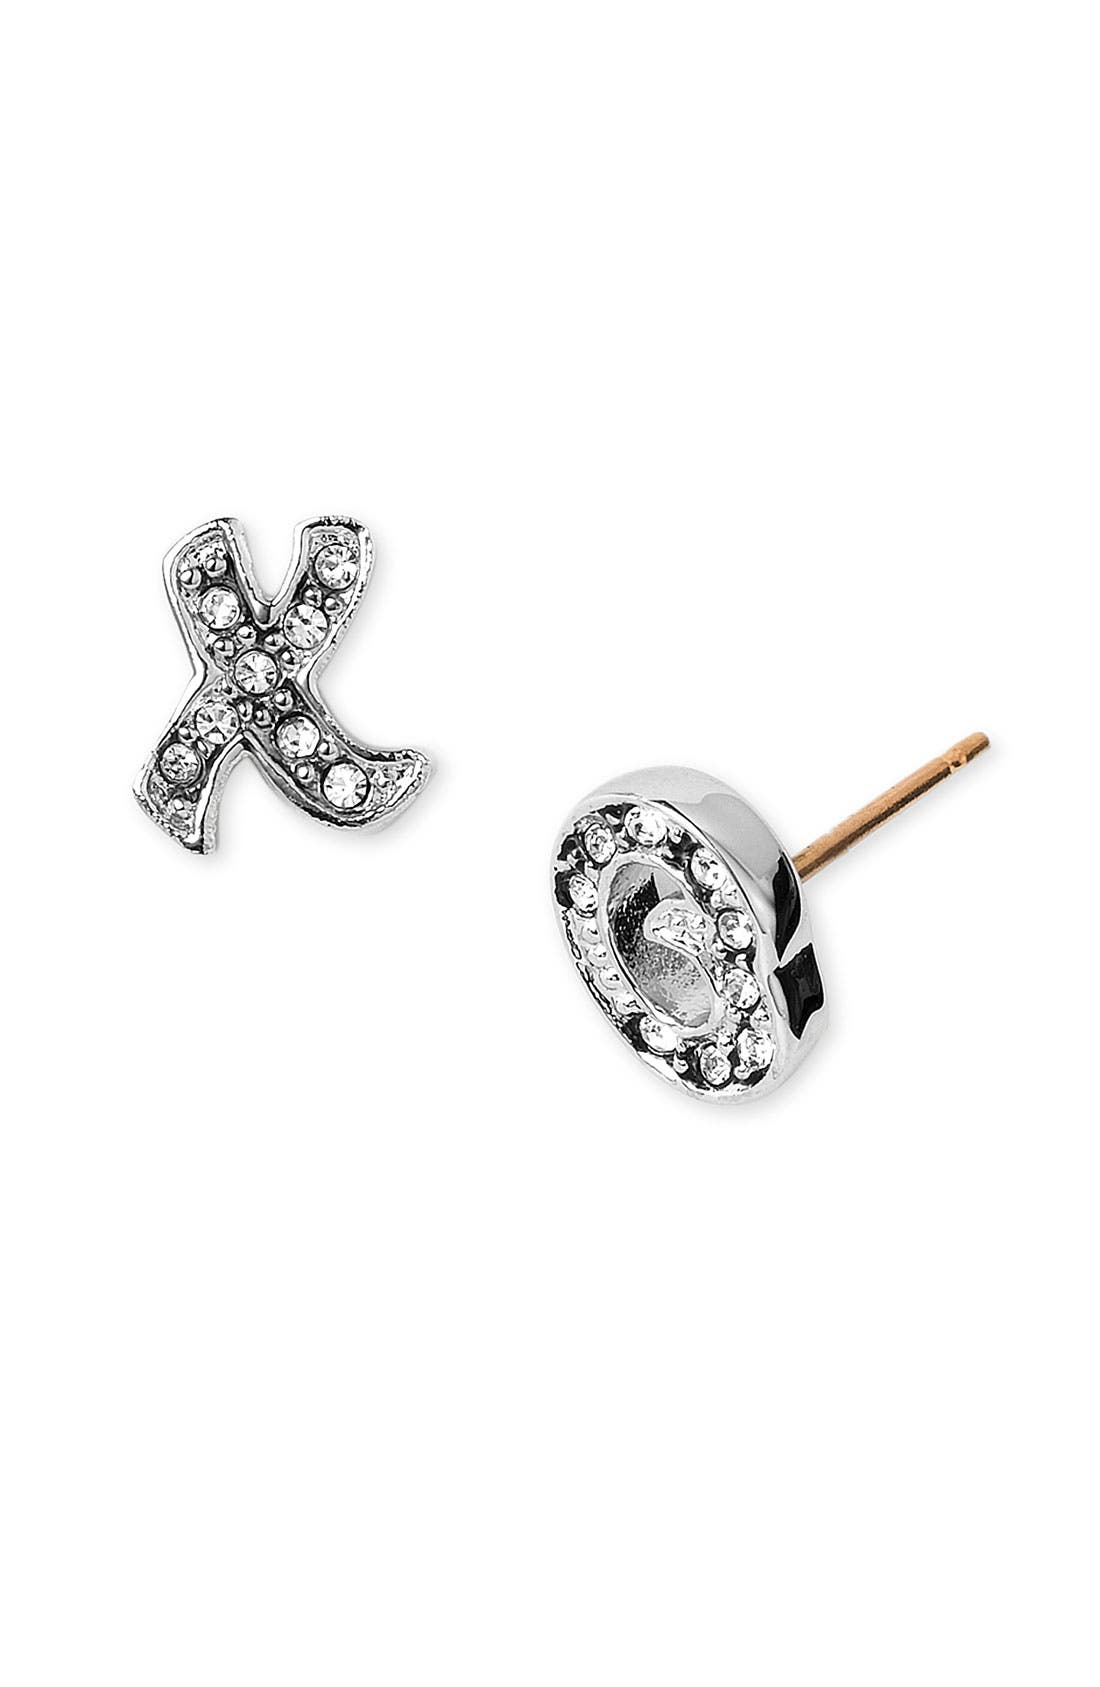 Main Image - Juicy Couture 'XO' Stud Earrings